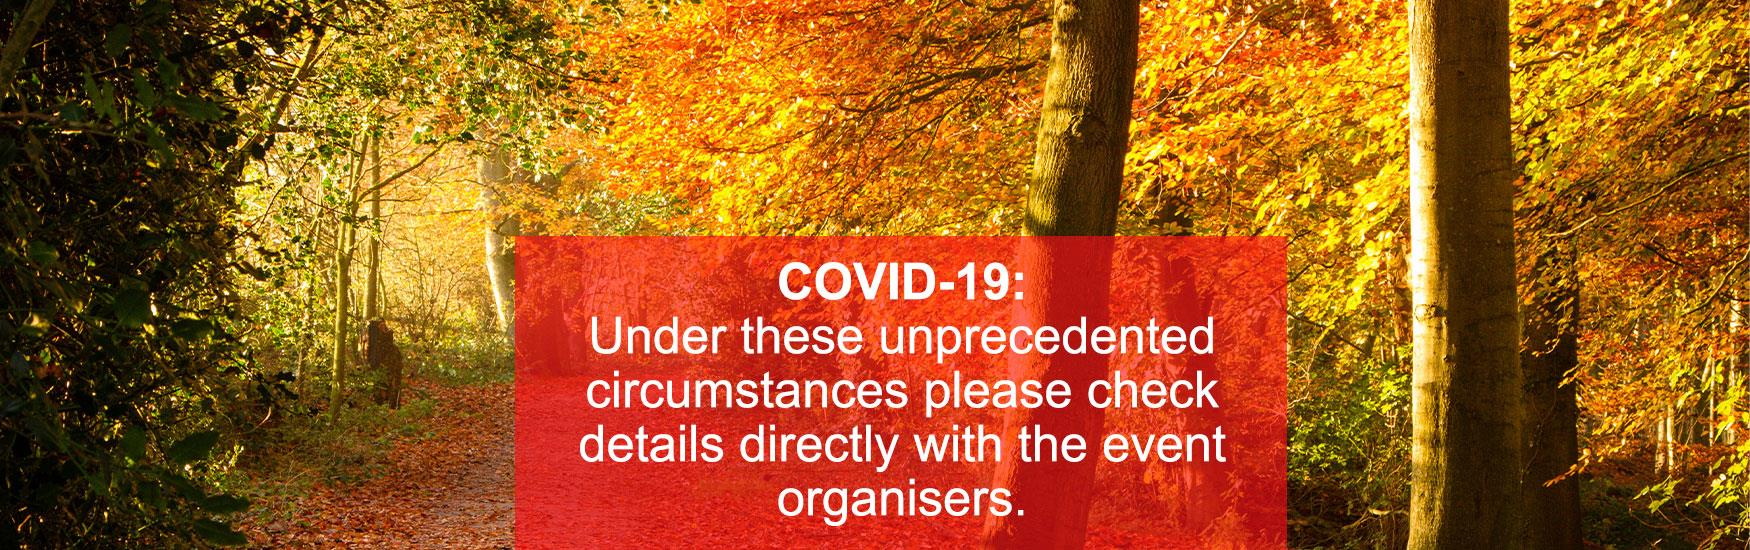 "Autumn trees at Upton Country Park with text that reads ""COVID-19: Under these unprecedented circumstances please check details directly with the event organisers."""